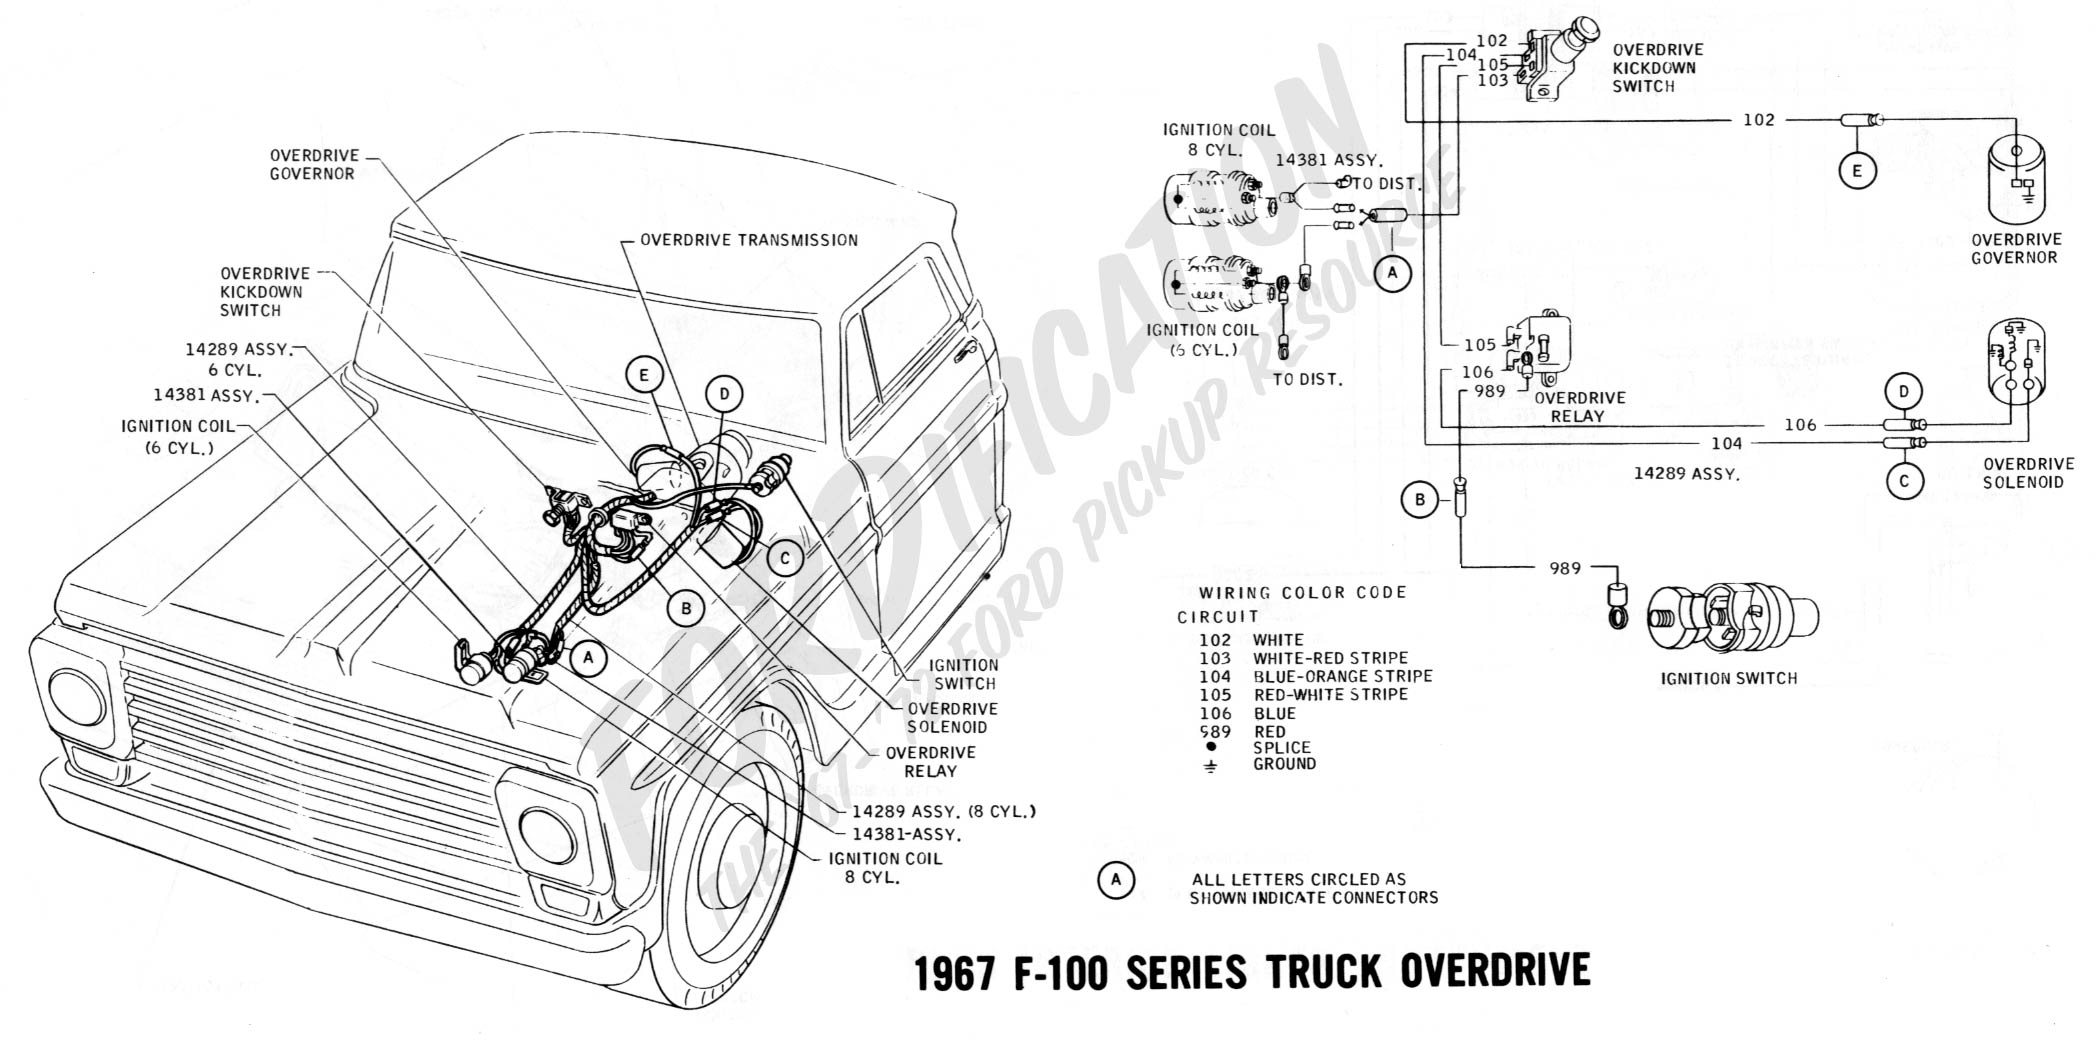 wiring 1967overdrive2 ford ignition coil wiring diagram dyna coil wiring diagram 65 ford f100 wiring diagram at webbmarketing.co